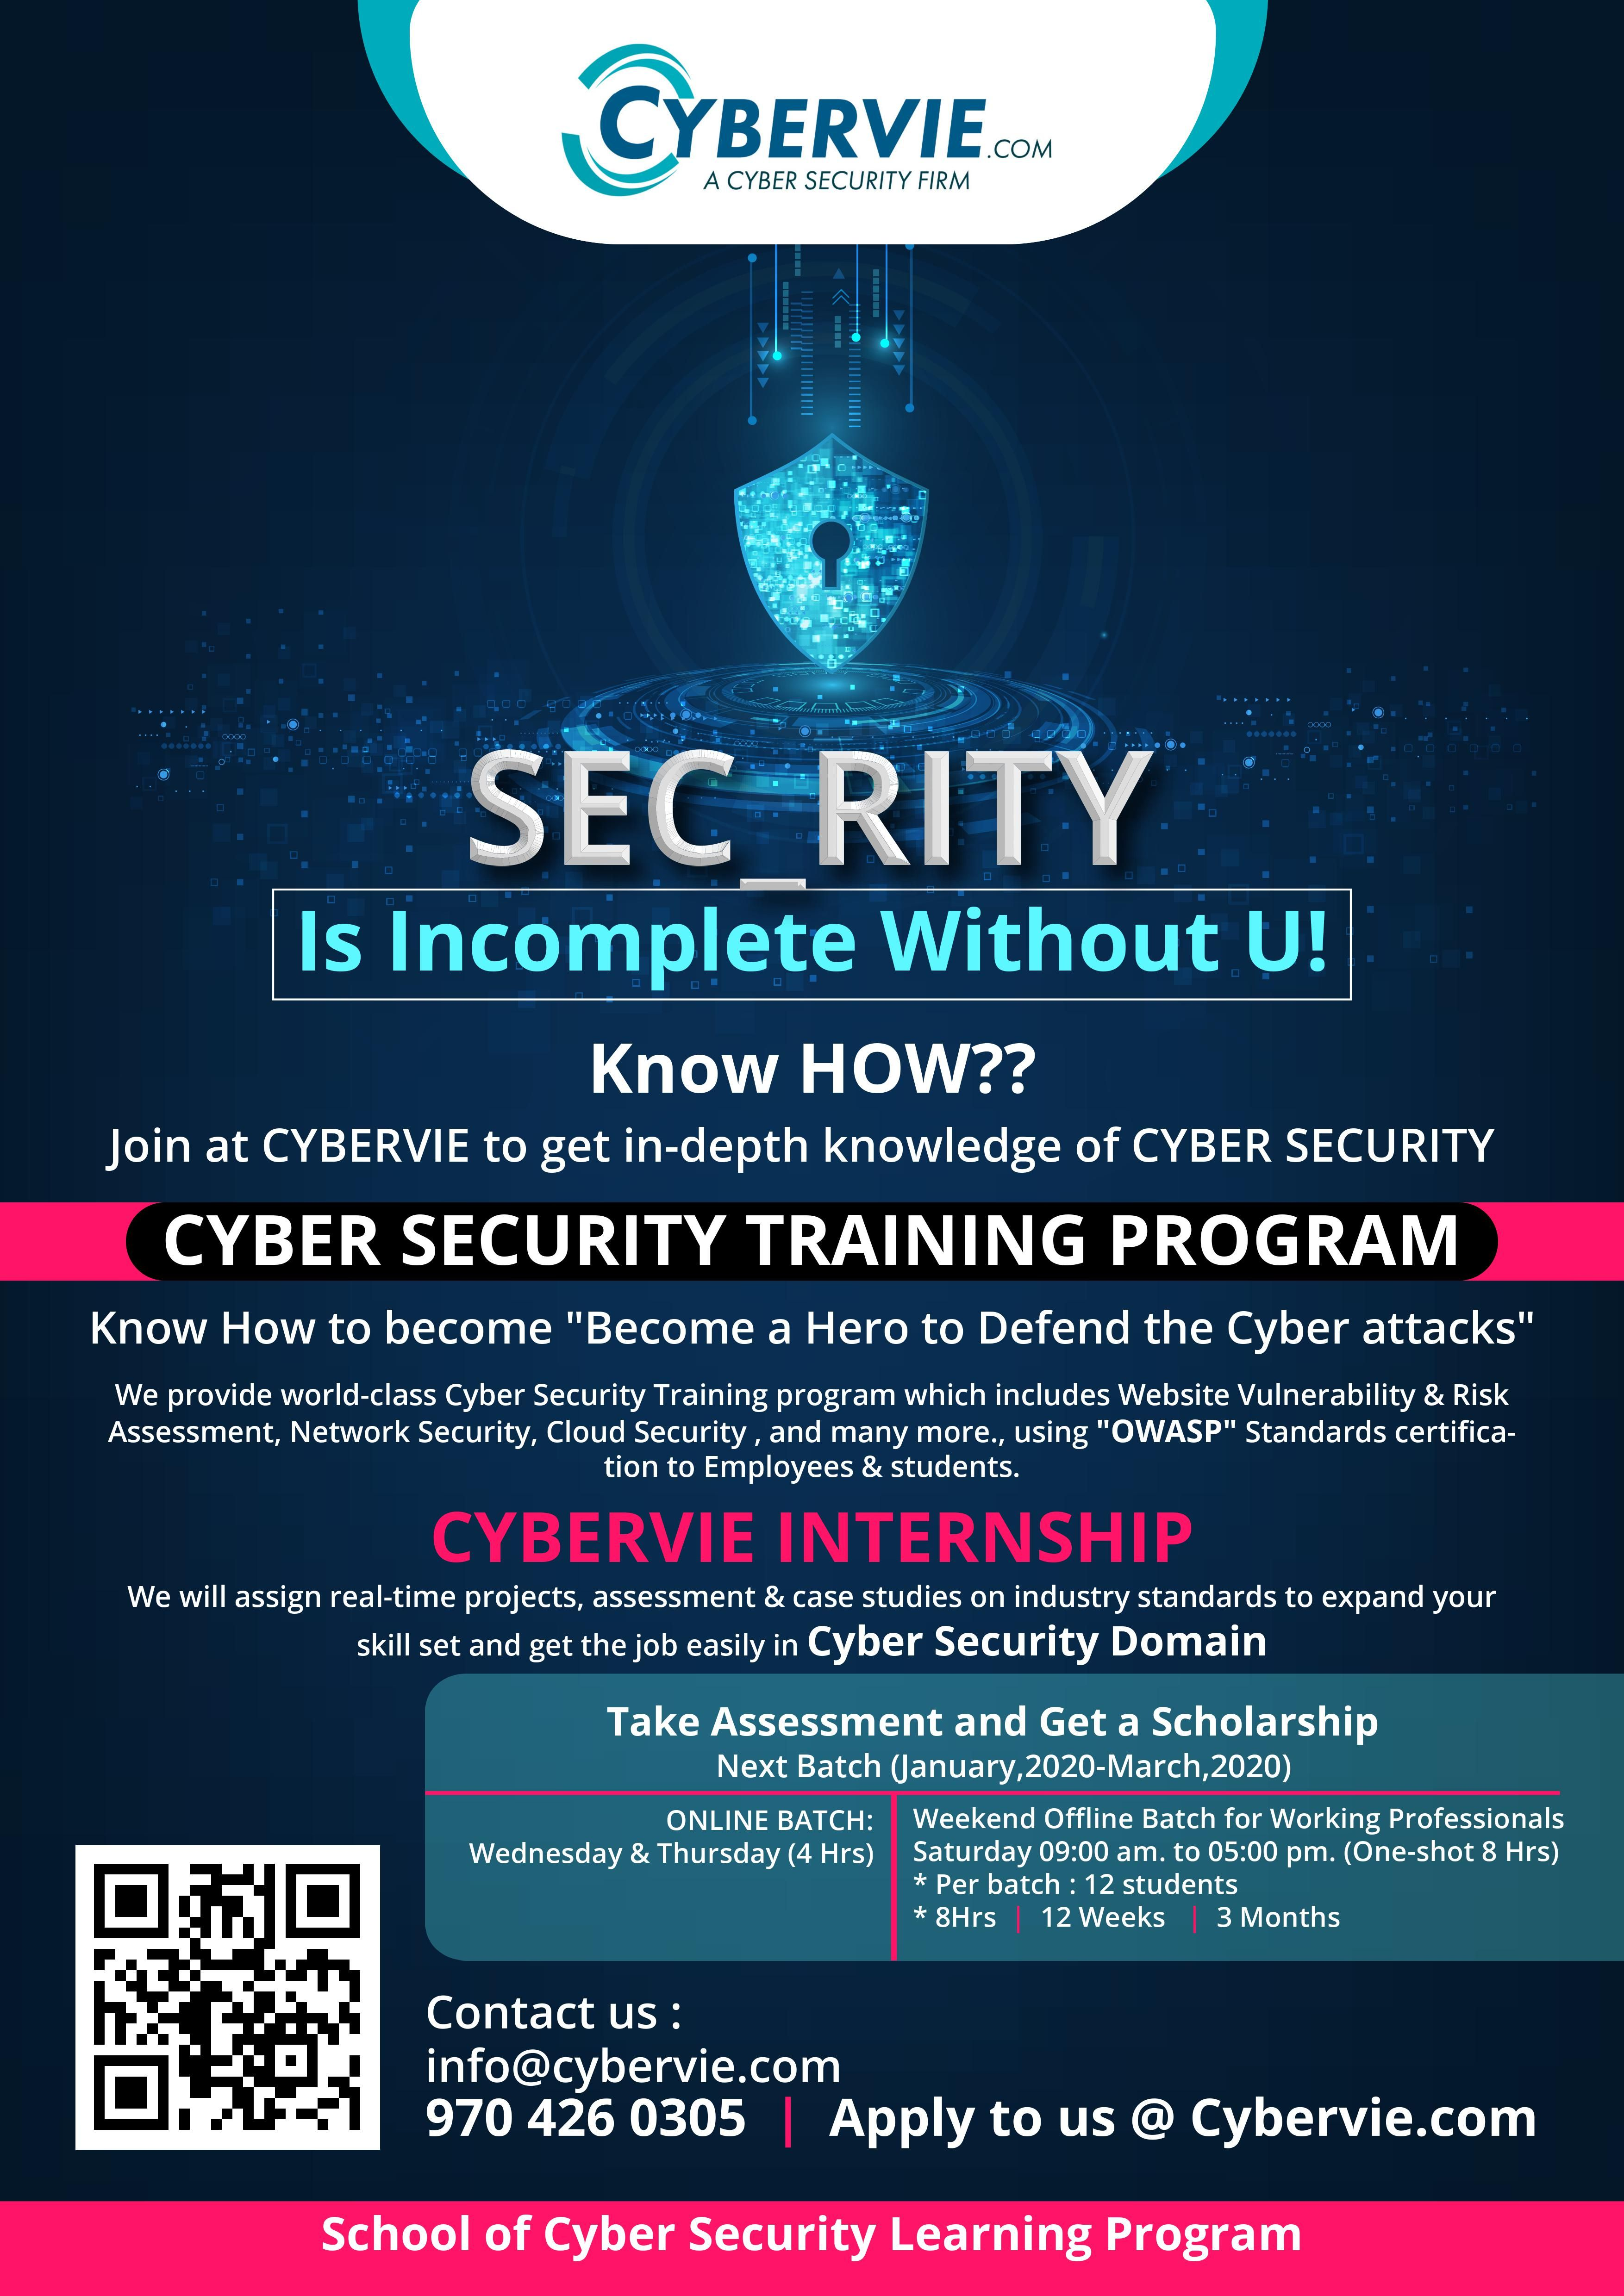 Cyber Security For Employees Security Training Cybersecurity Training Cyber Security